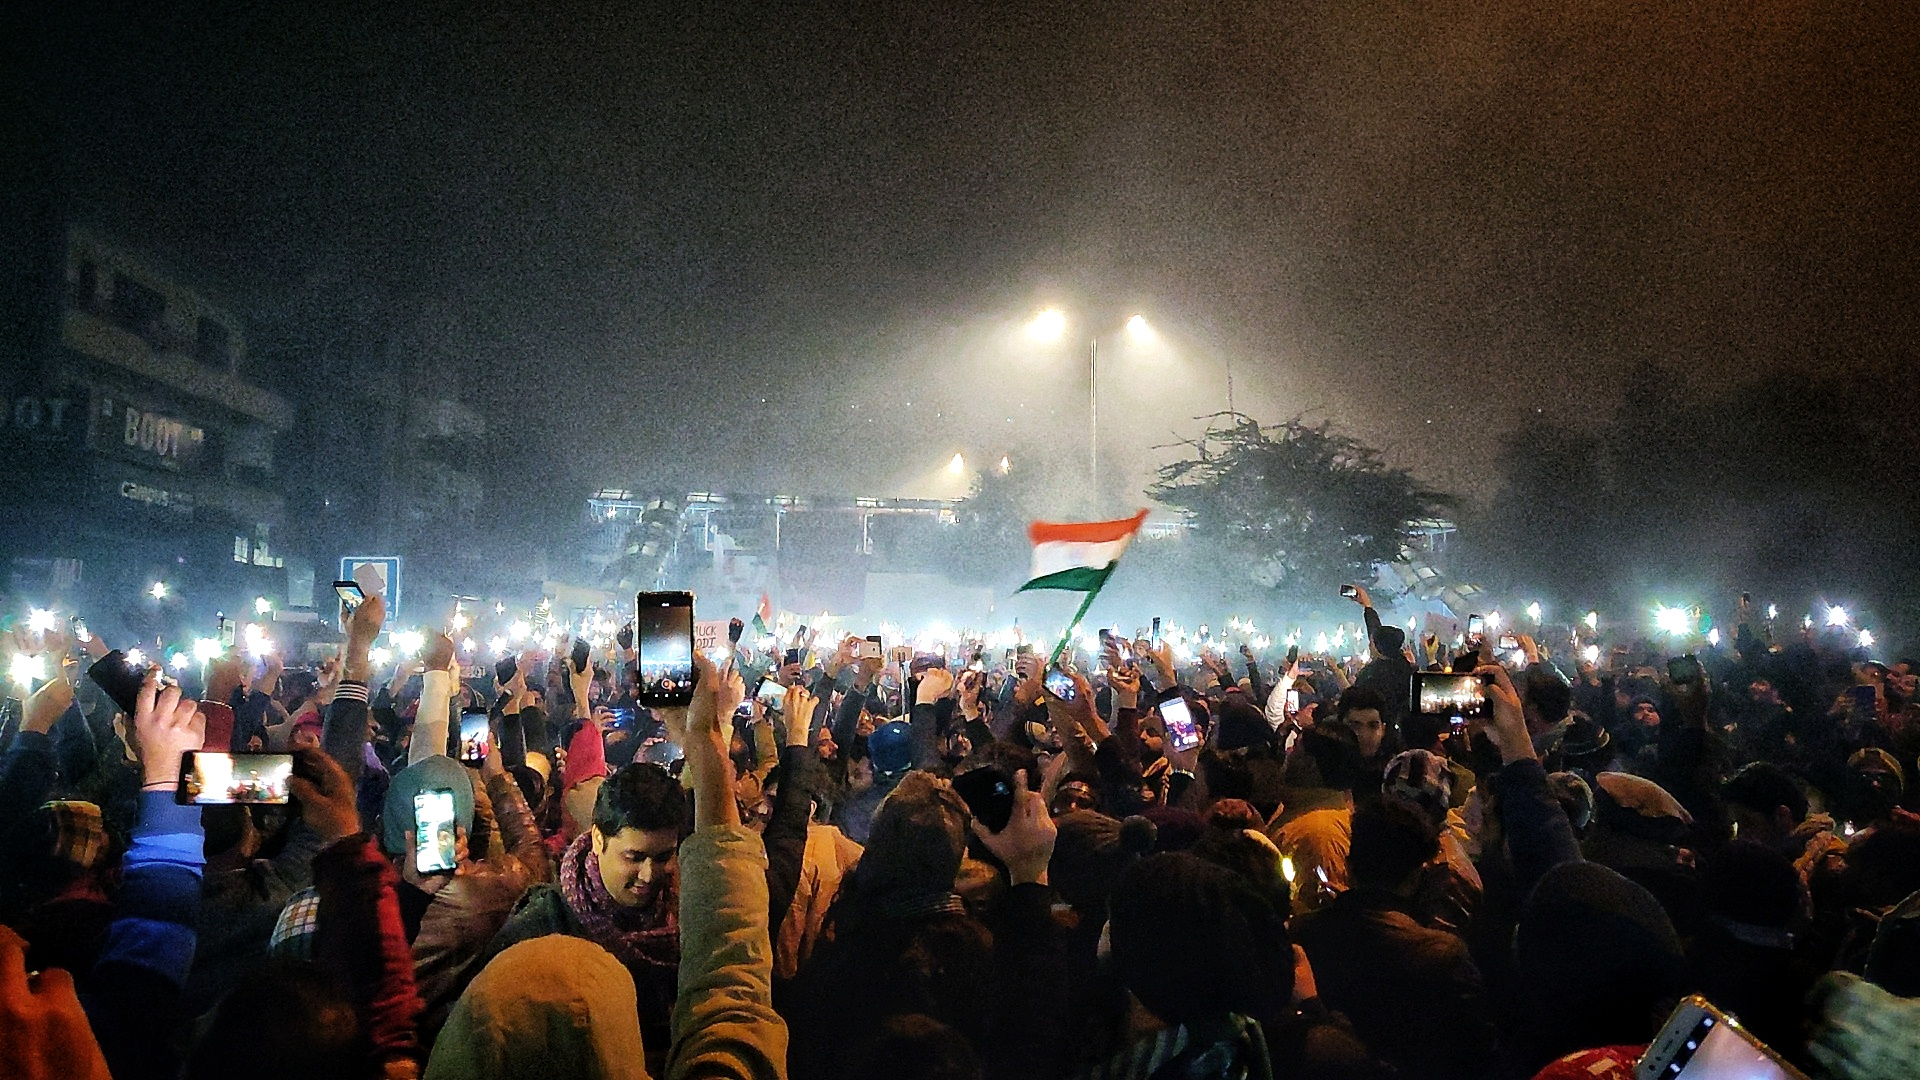 People gather at Shaheen Bagh in New Delhi to protest against the Citizenship (Amendment) Act, 2019 and the proposed nationwide exercise of National Register of Citizens, on Tuesday, December 31, 2019.